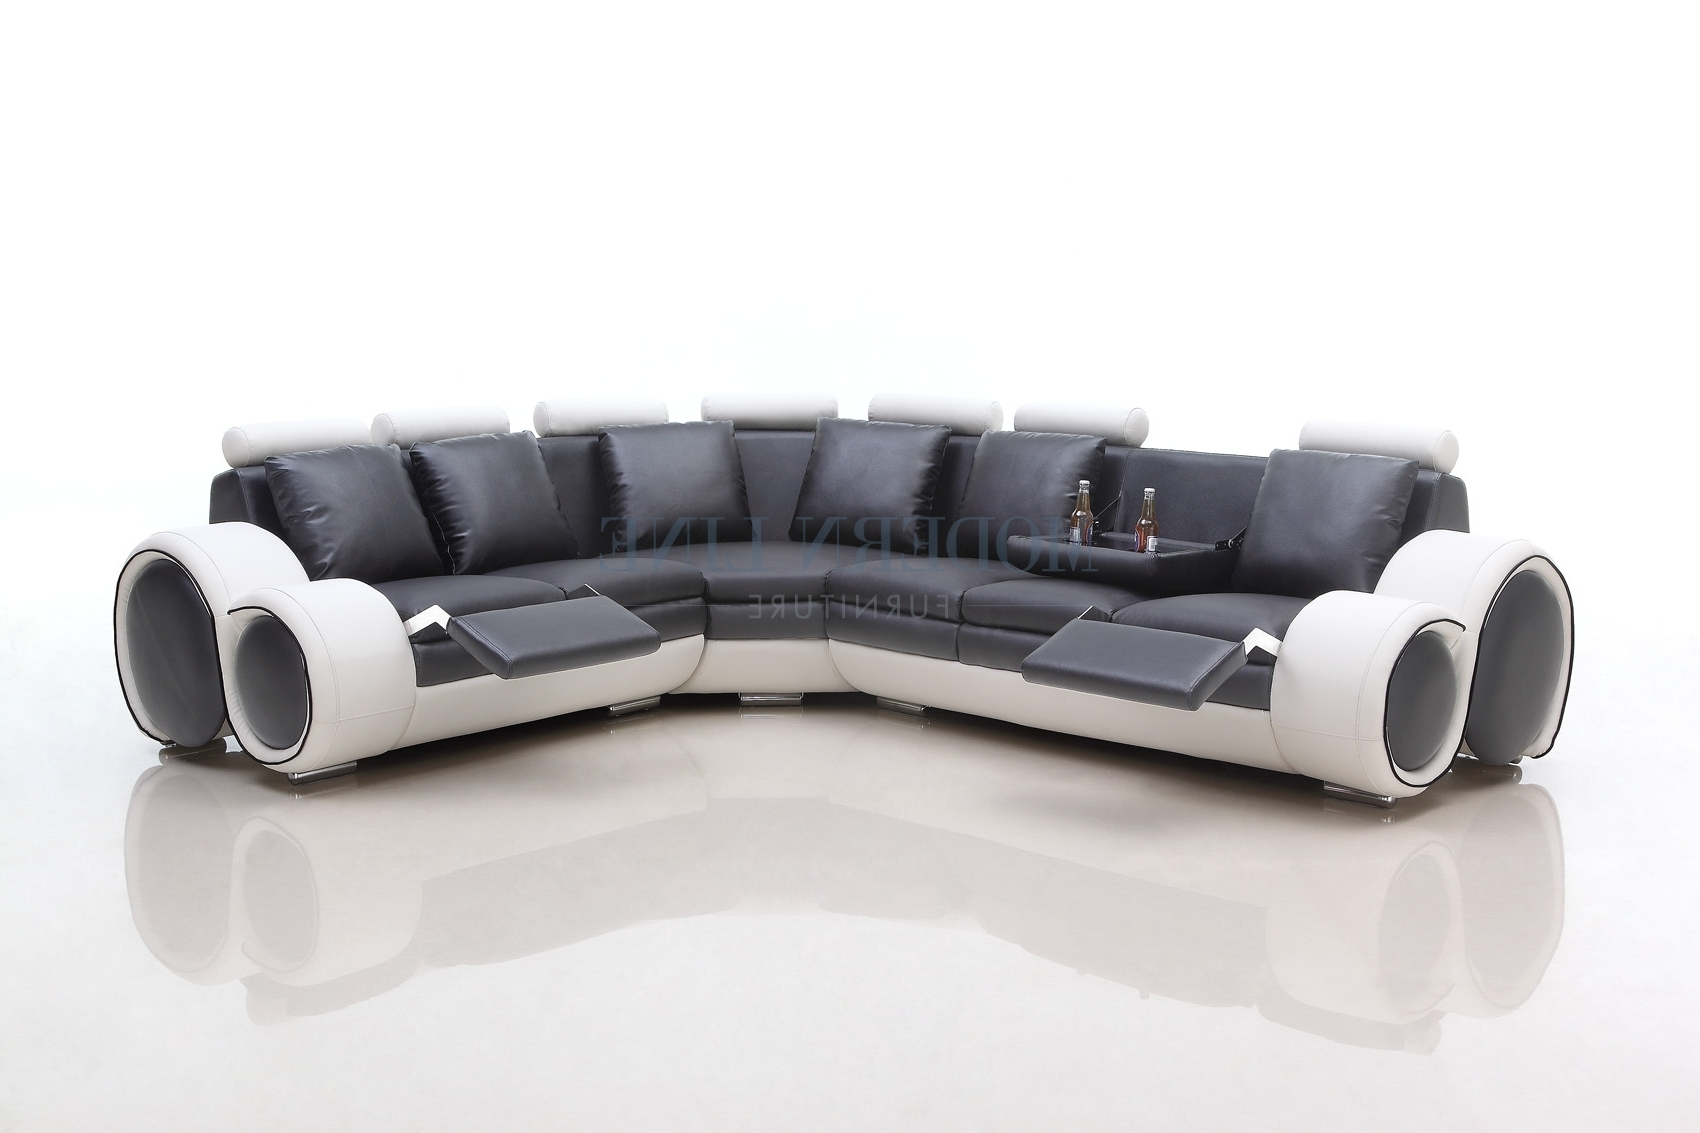 View Photos Of Sectional Sofas With Consoles Showing 11 Of 20 Photos